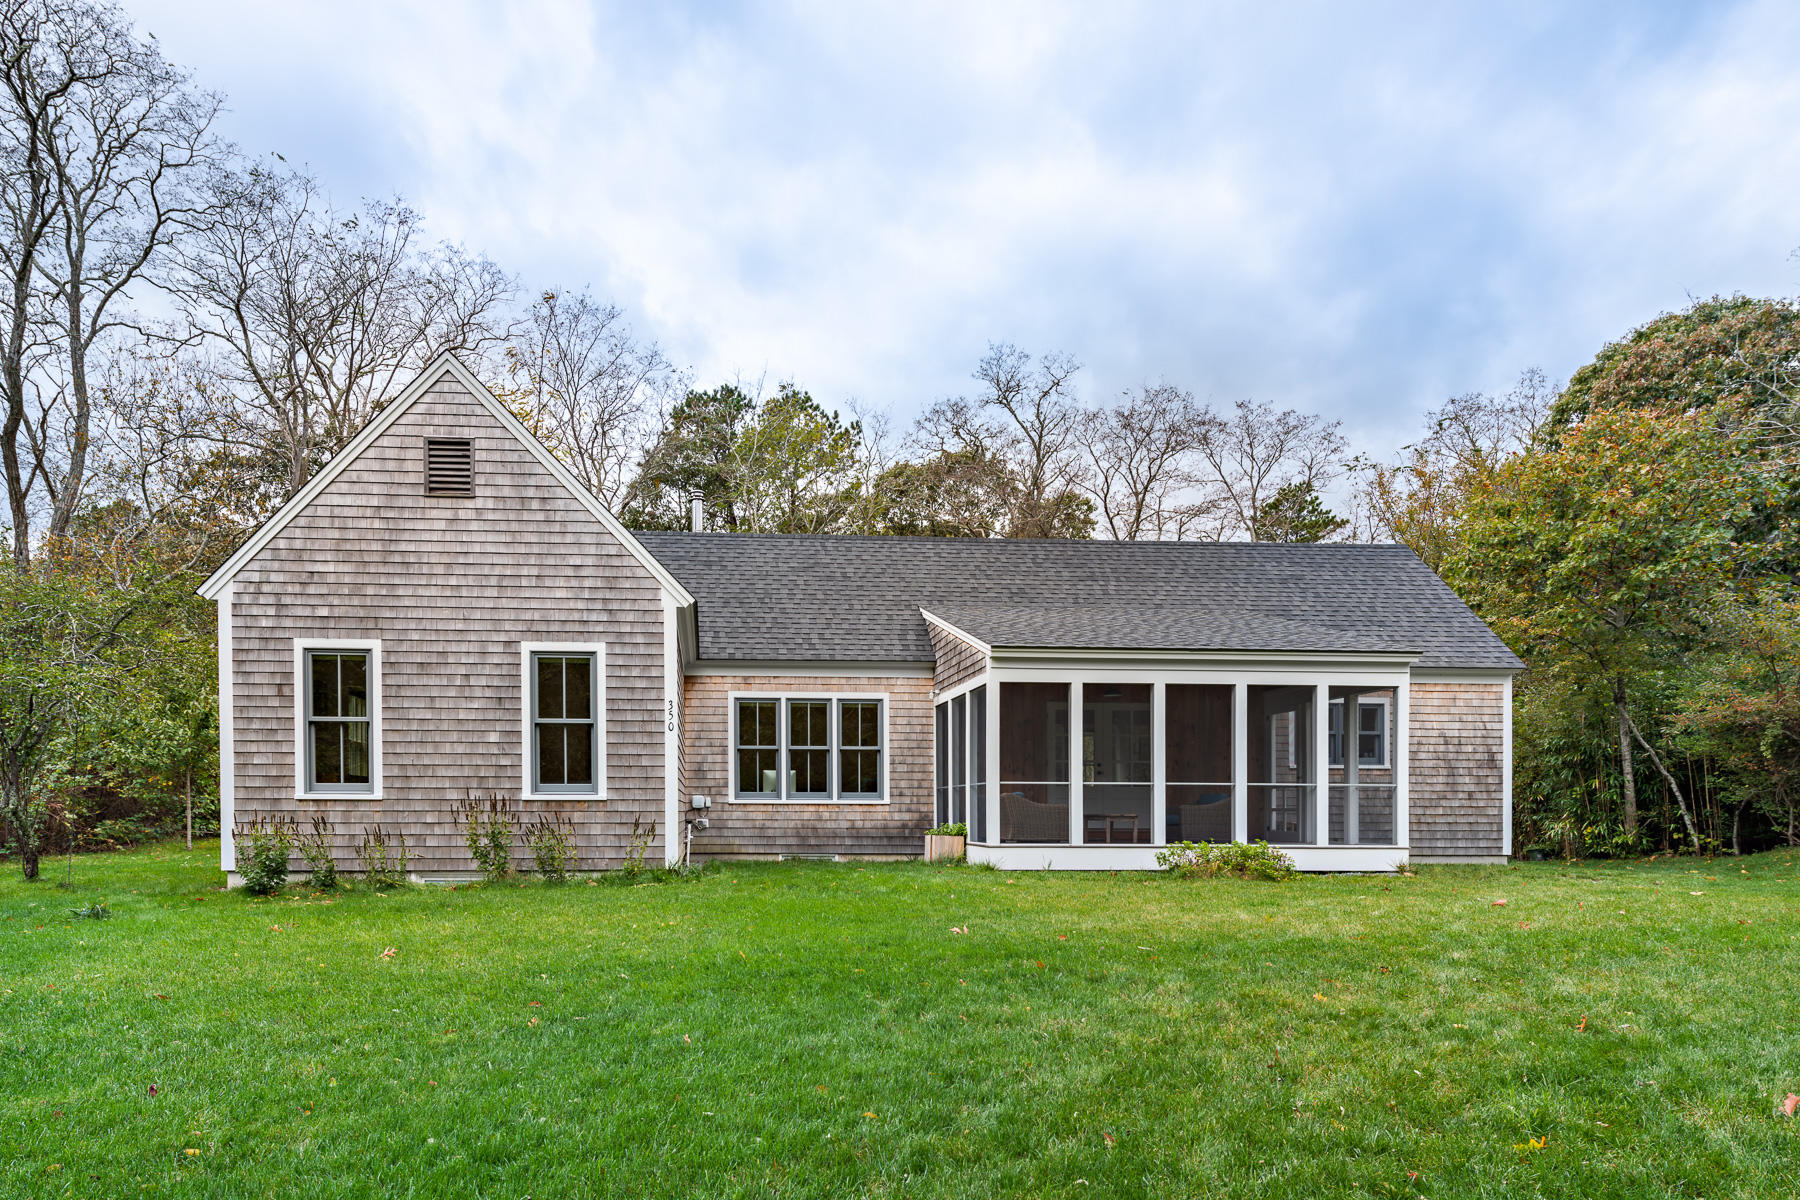 350 Pamet Point Road, Wellfleet MA, 02667 details